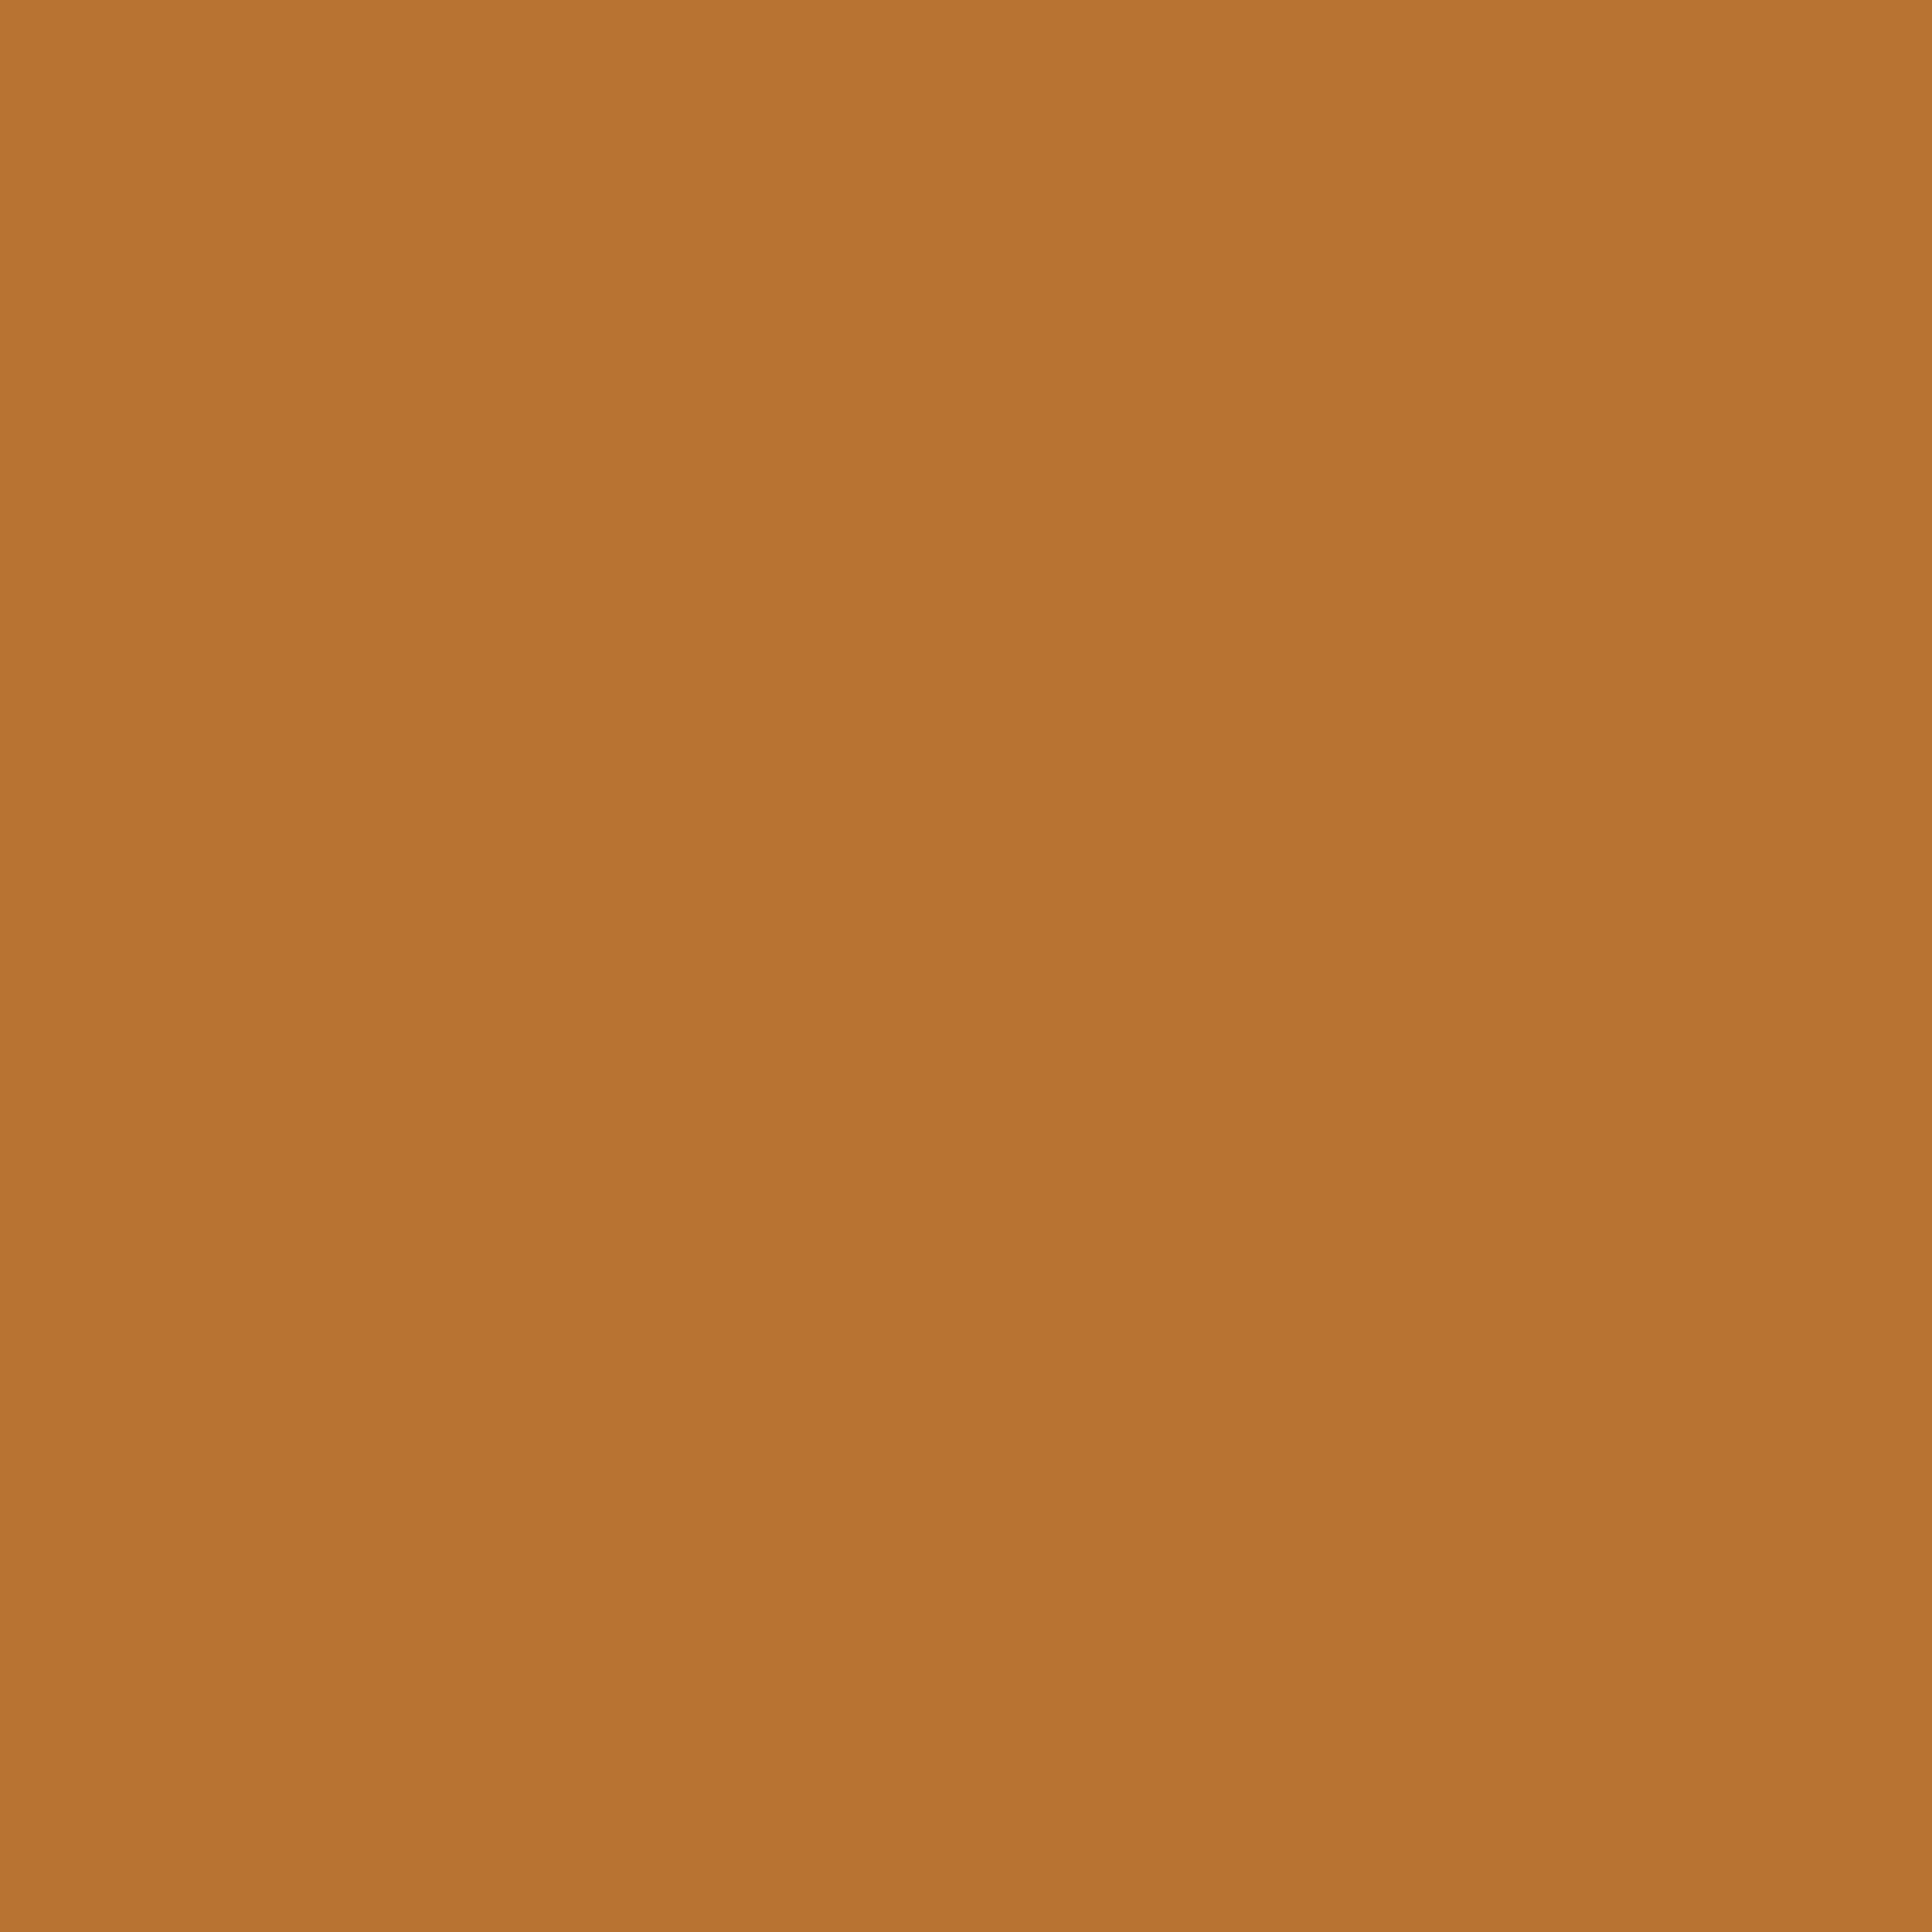 2048x2048 Copper Solid Color Background